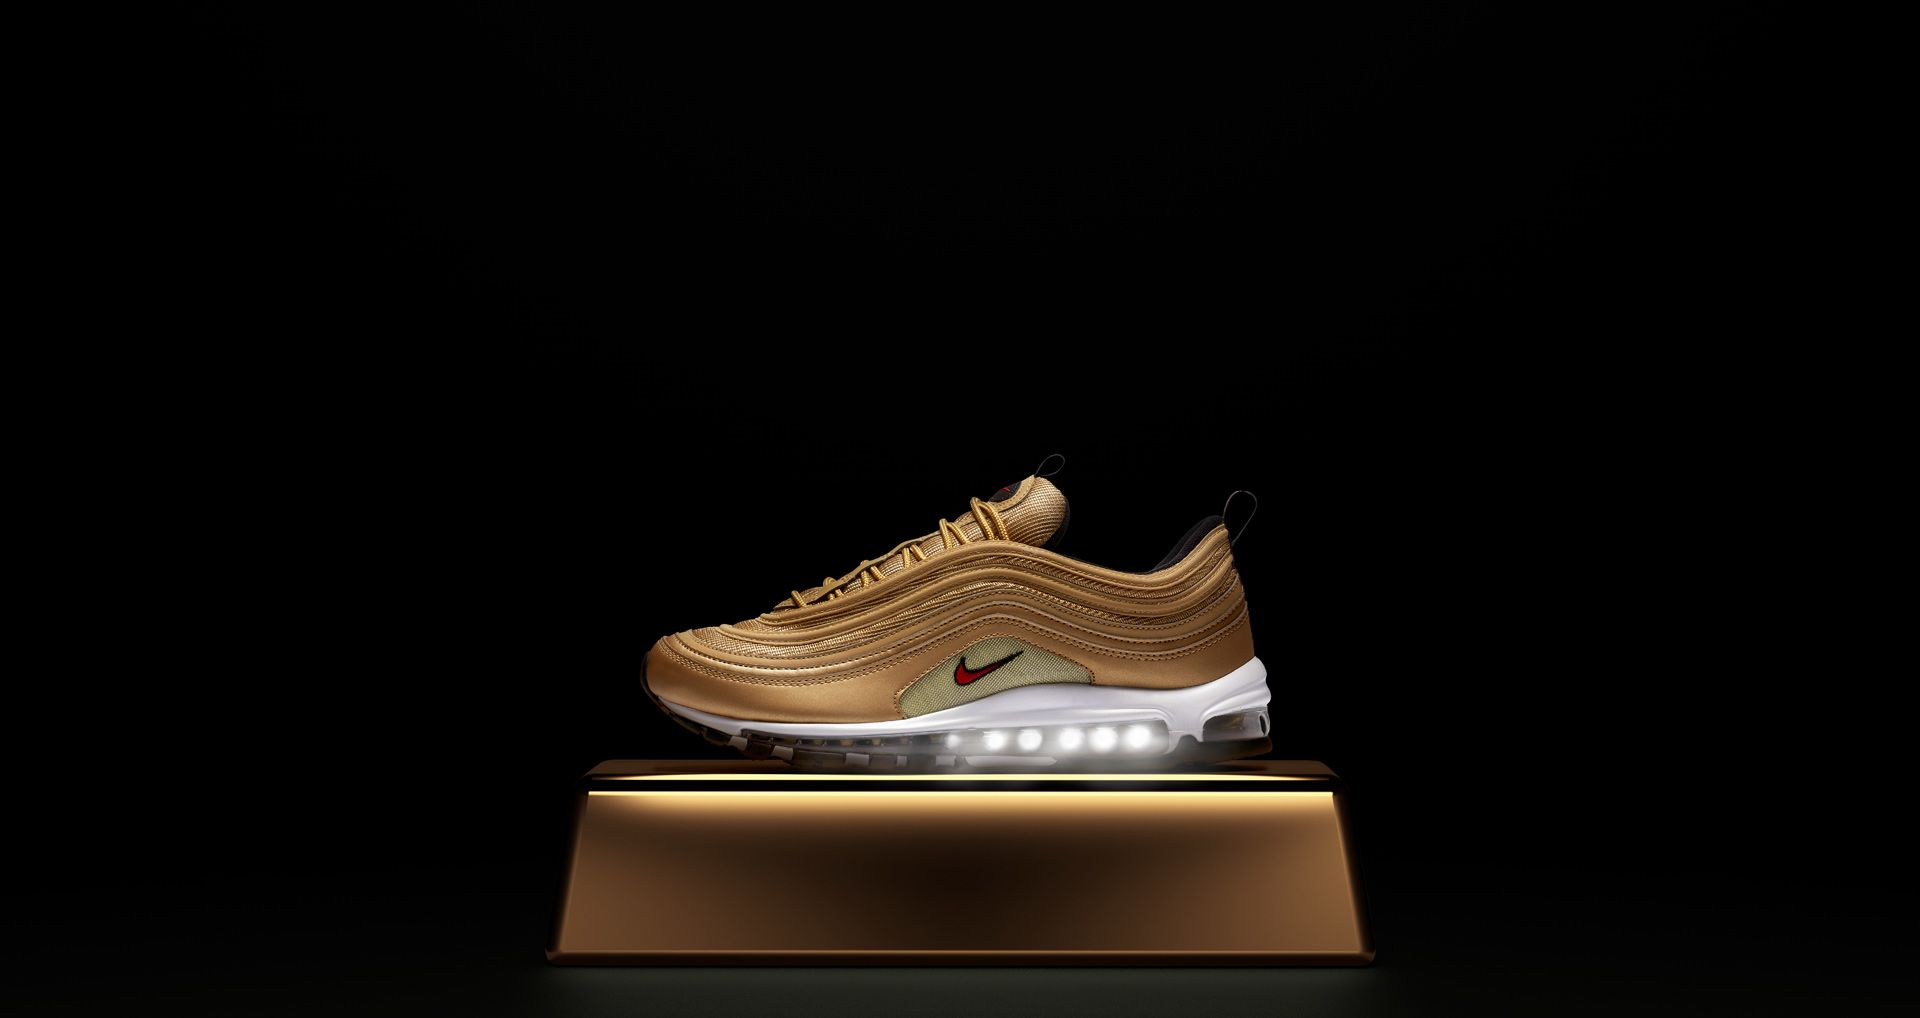 sports shoes dcbe3 8ddd6 Nike Air Max 97 OG QS 'Metallic Gold' Release Date. Nike⁠+ SNKRS